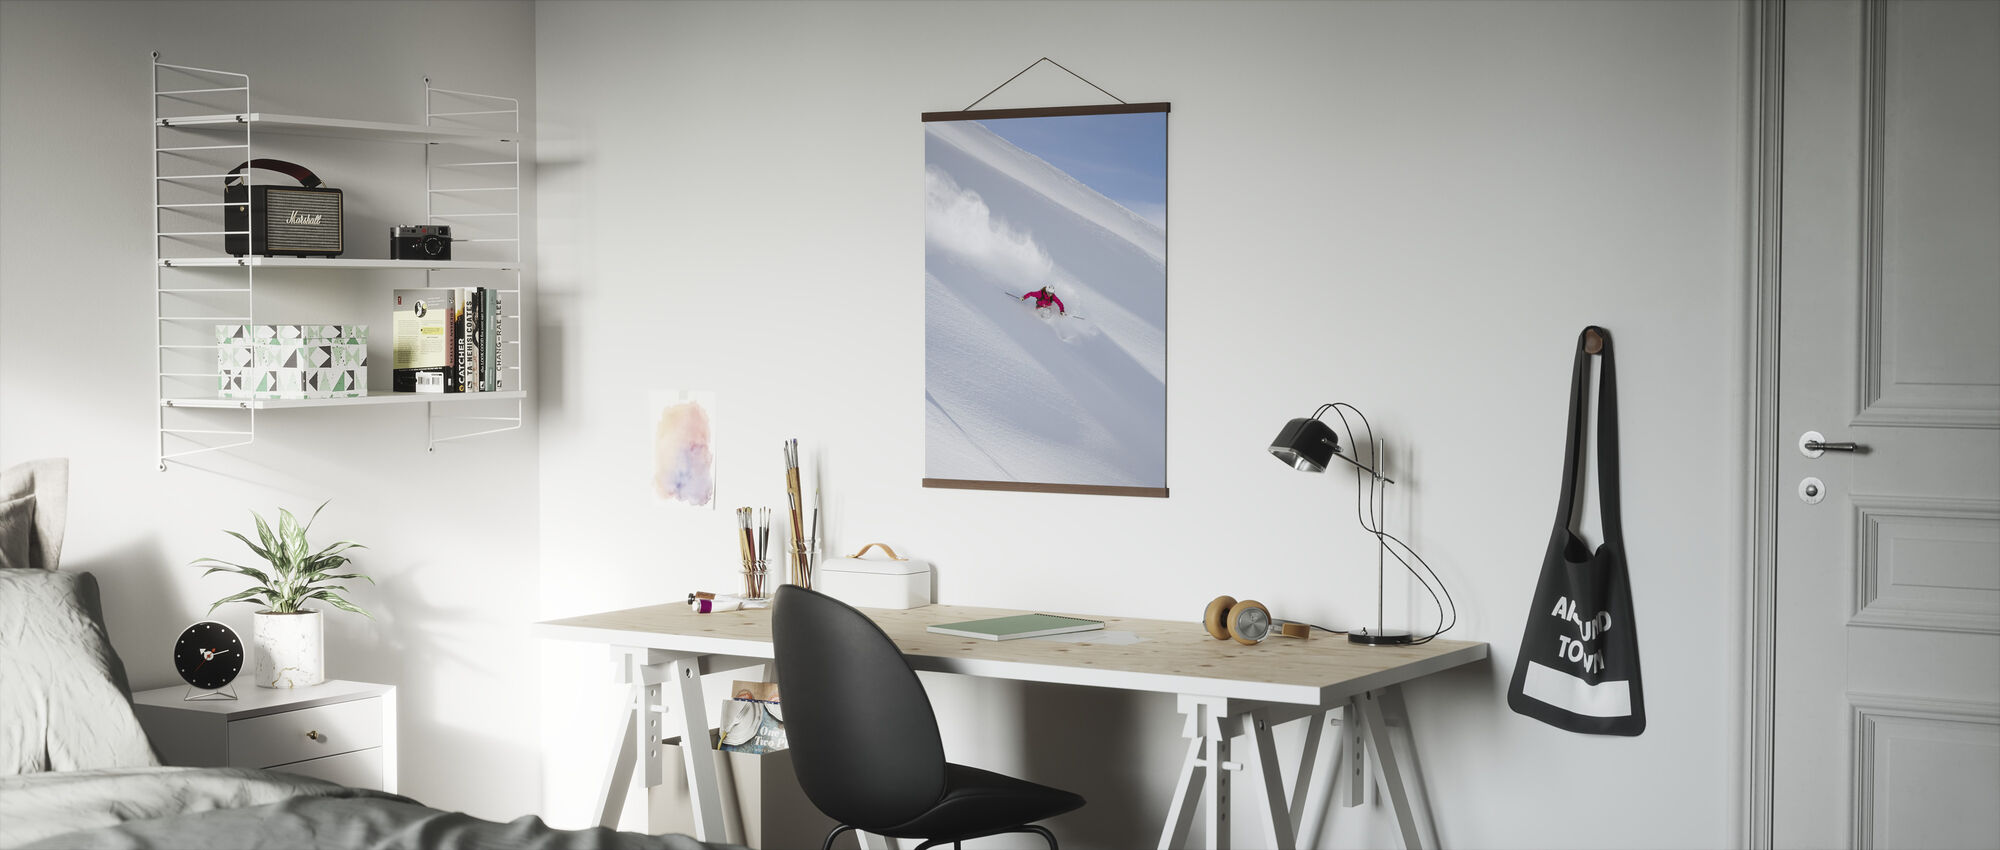 Skiing in Chamonix, France - Poster - Office